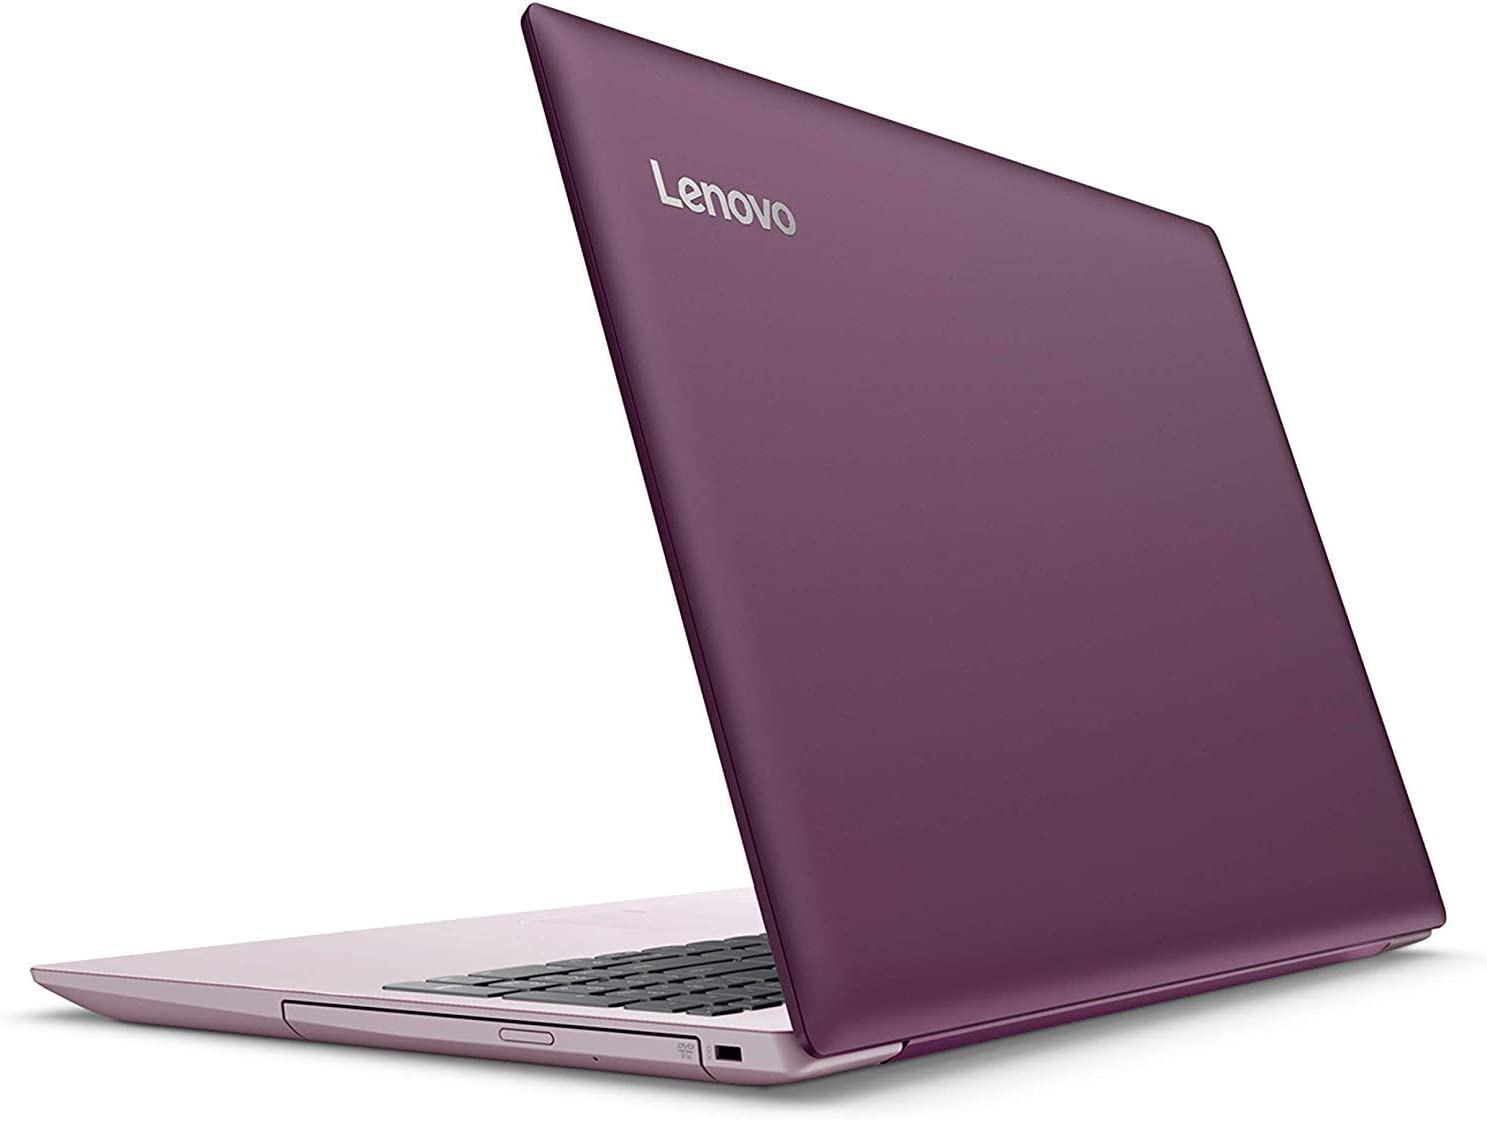 "Lenovo Ideapad 330 15.6"" Anti Glared HD Premium Business Laptop (AMD A9-9425 up to 3.7 GHz, 8GB DDR4 Memory, 256GB SSD, AMD Radeon R5 Graphic, DVD-RW, HDMI, Windows 10 Home) - Purple"